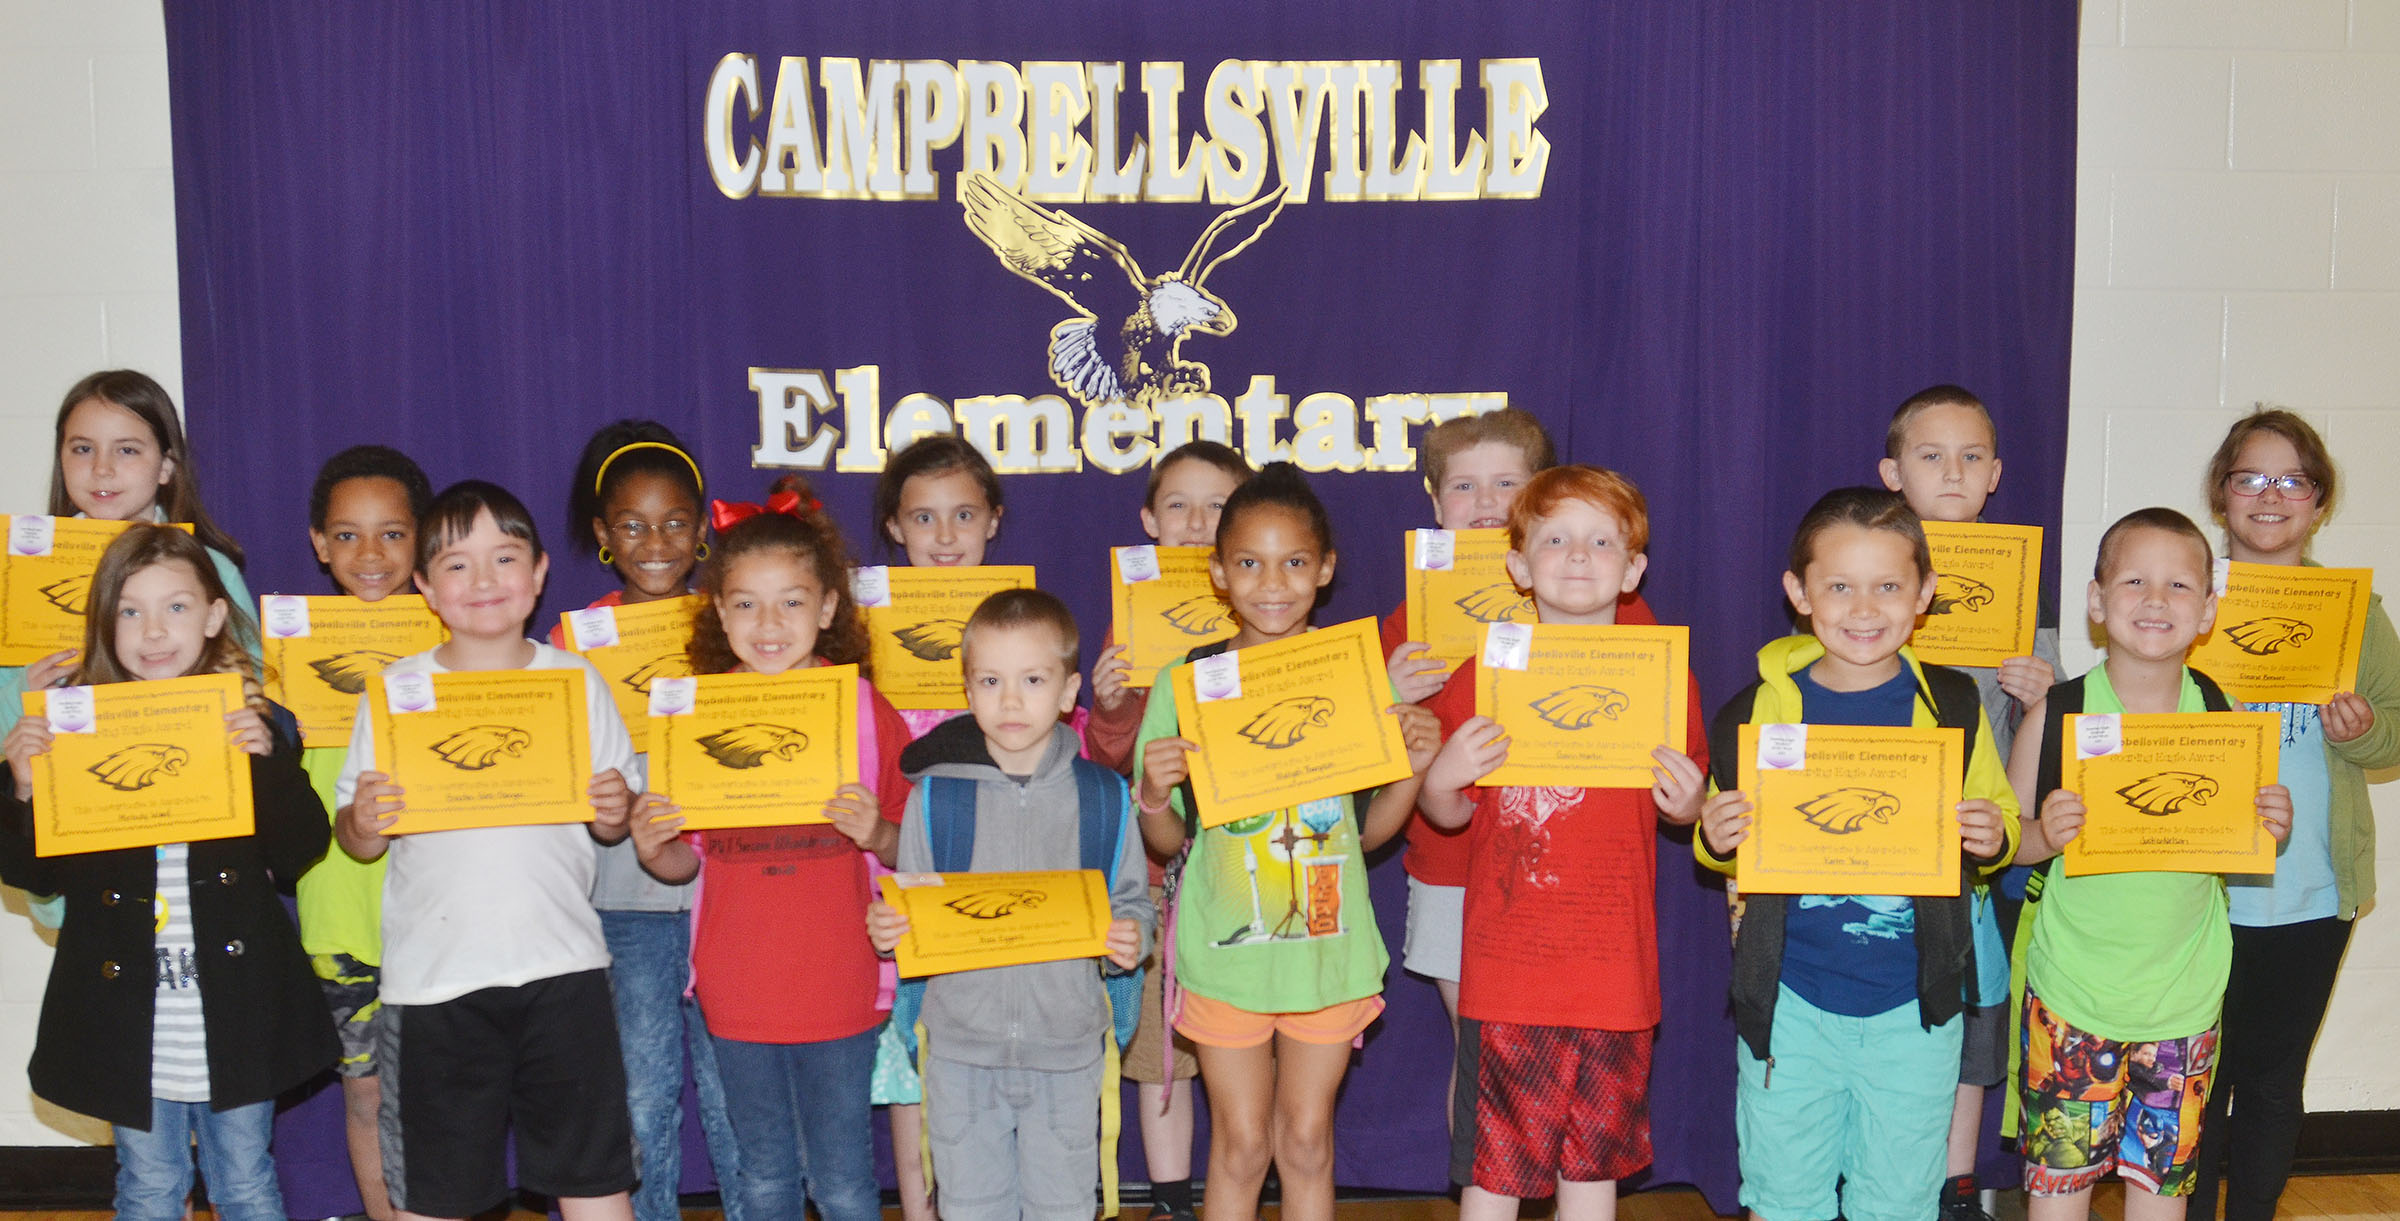 From left, front, are kindergartener Melody Ward, first-graders Braxton Giles-Osinger and Ammarissa Nunez, kindergartener Alex Eggers, second-graders Malia Thompson and Gavin Martin and kindergarteners Karter Young and Justice Nelson. Back, third-graders Alexis Roddy, Jalen Embry and Maliyah Harris, second-grader Annabelle Brockman, first-graders Aiden Forrest and Elizabeth Foster, second-grader Carson Ford and third-grader Eleana Brewer. Absent from the photo is first-grader Bree Farmer.